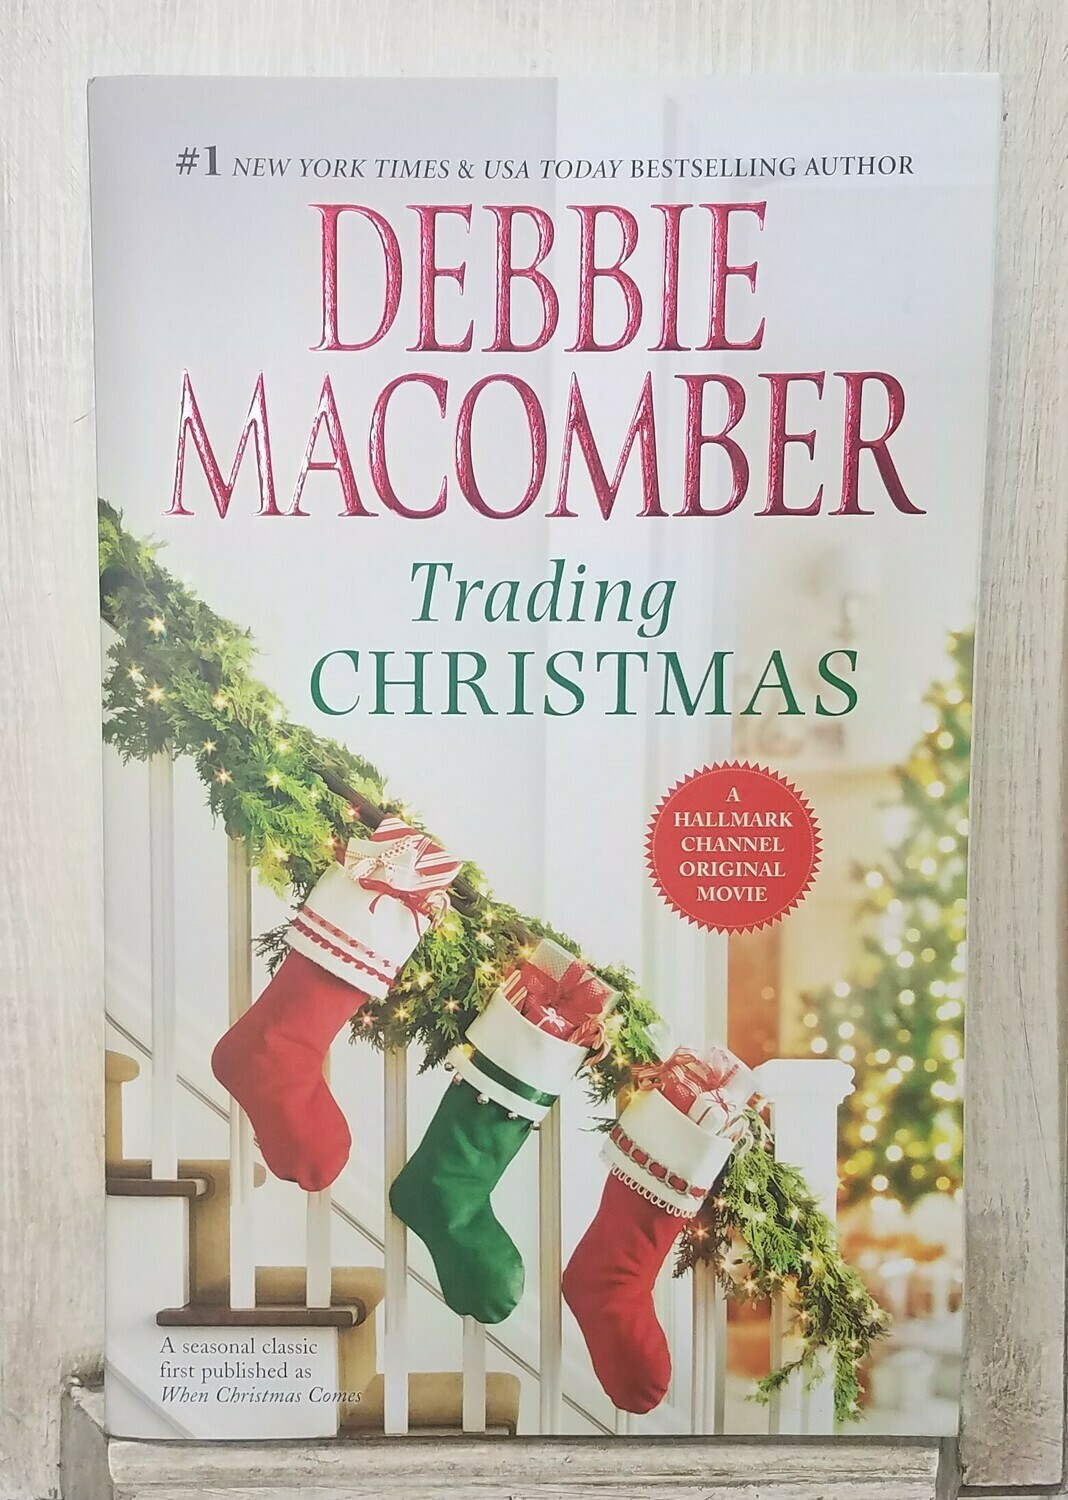 Trading Christmas by Debbie Macomber